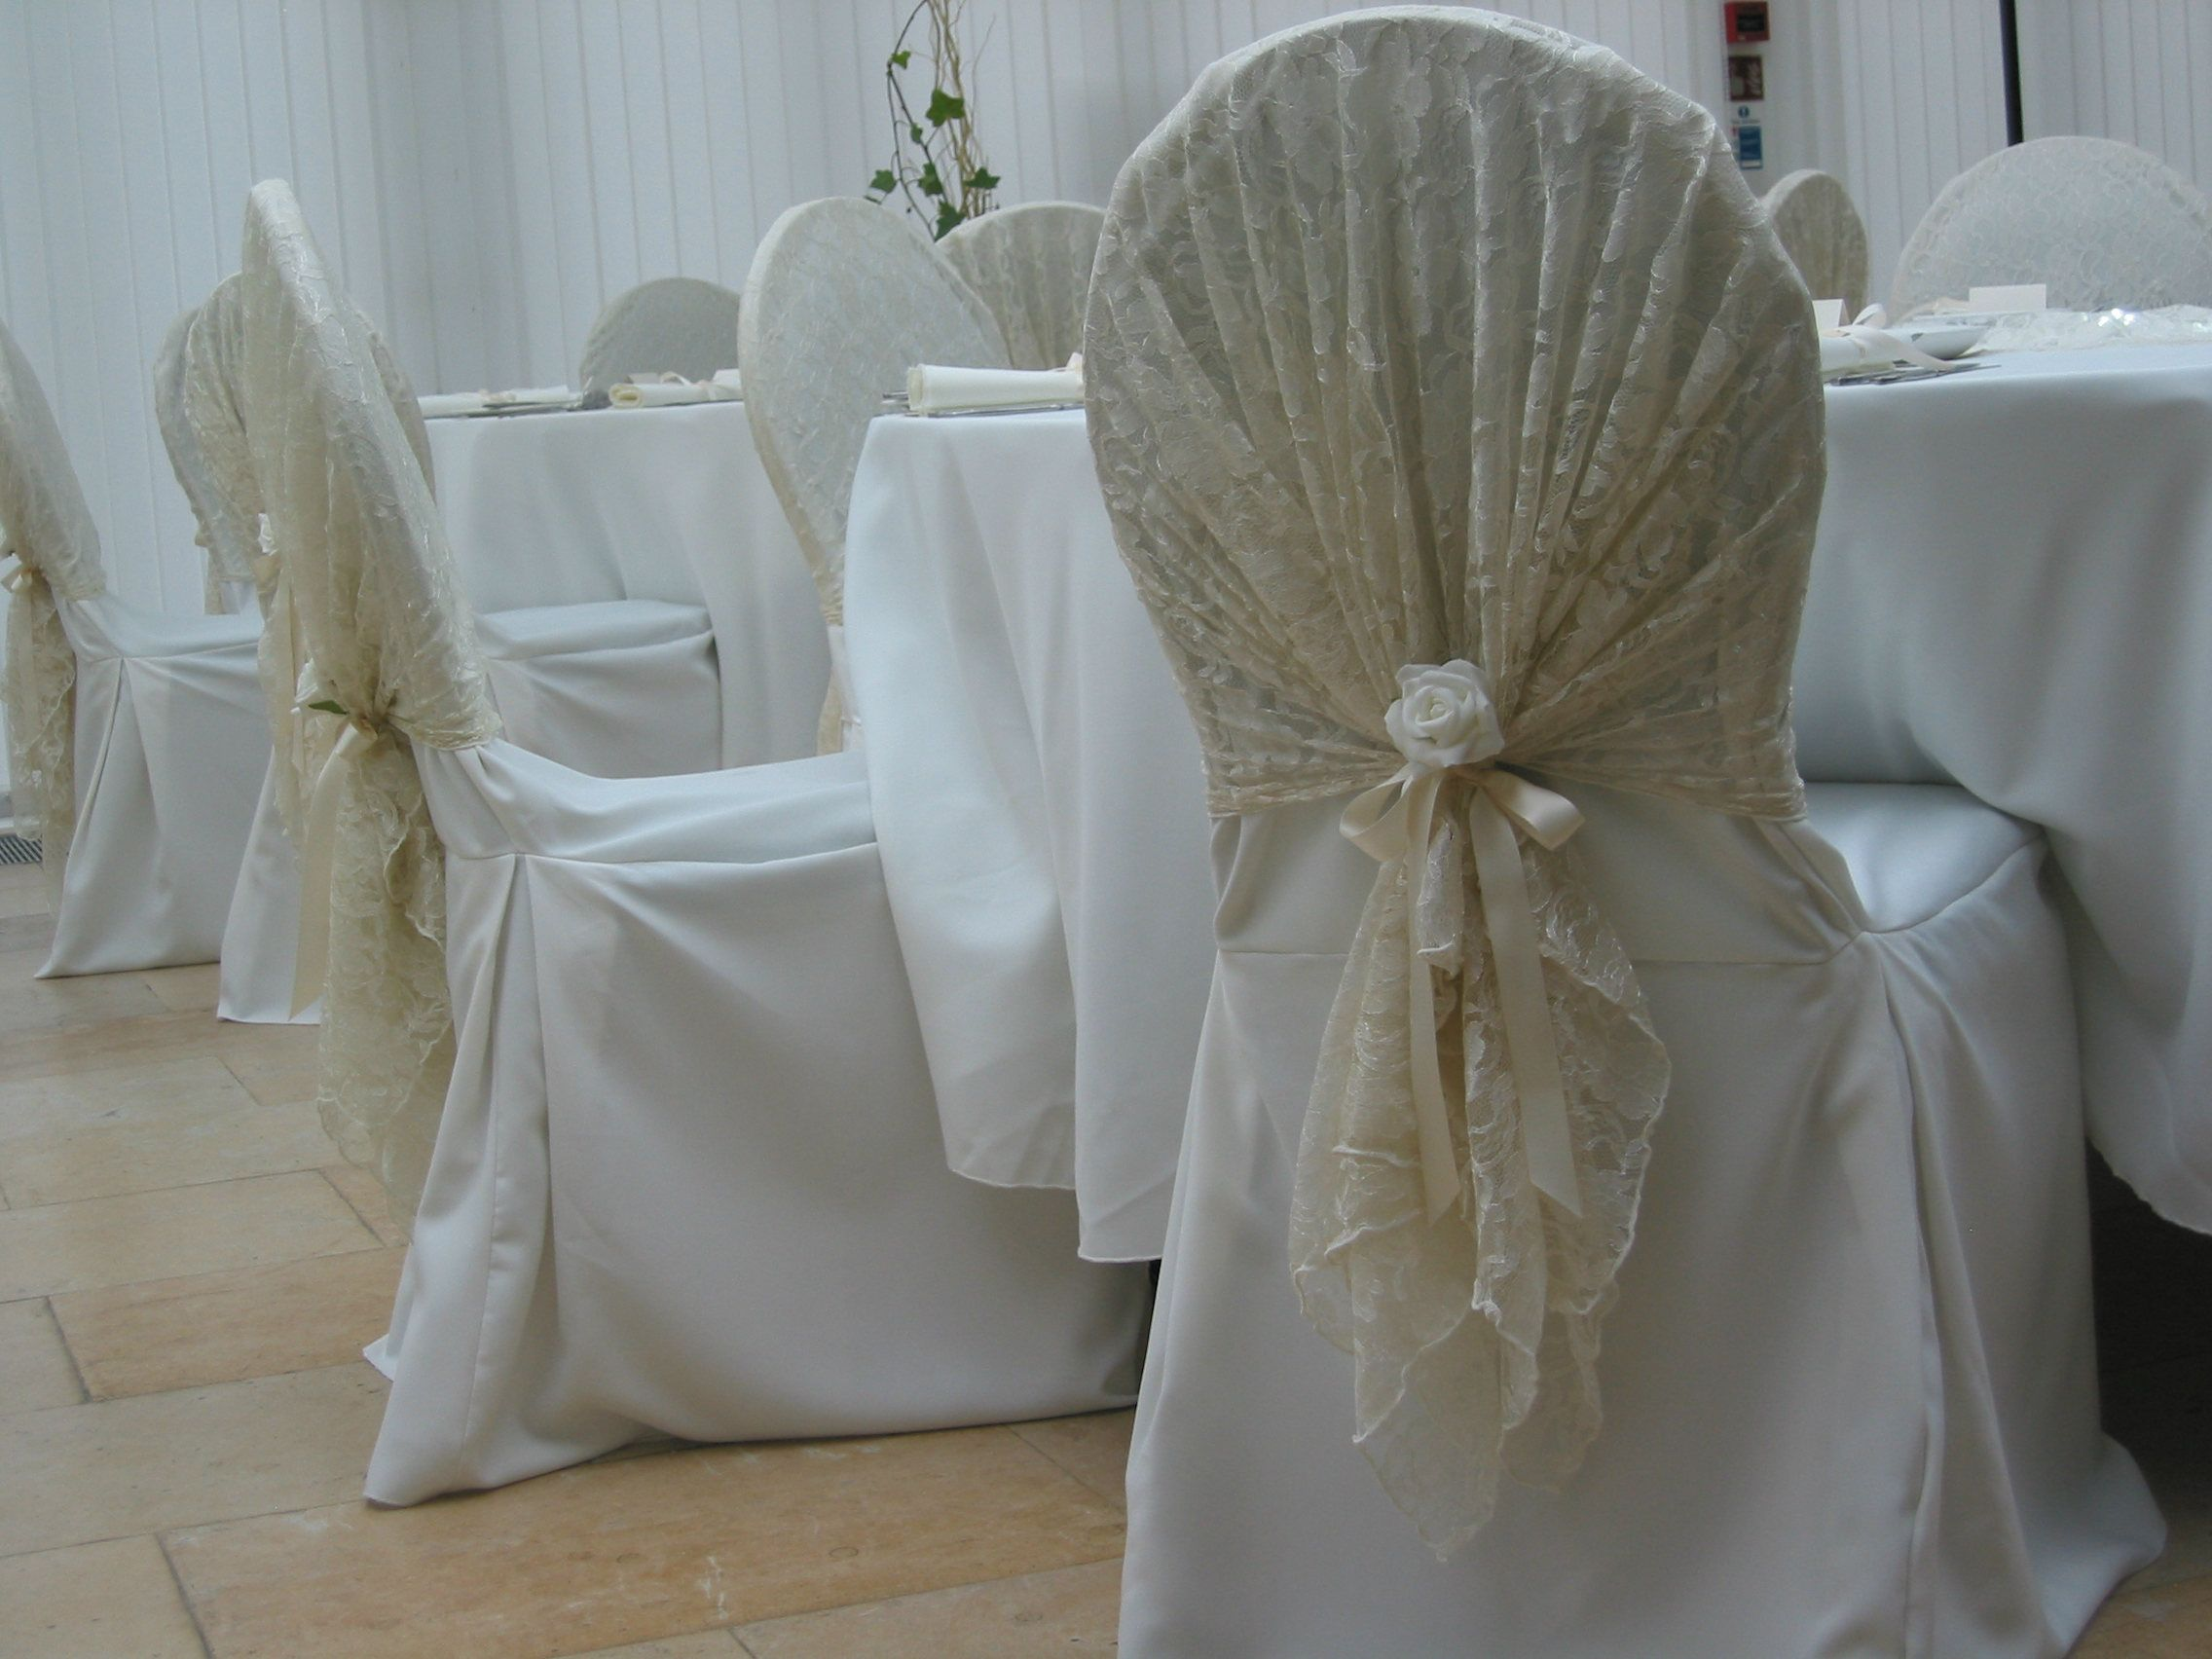 Wedding Chair Covers Devon Clearance Accent Chairs Vintage Style Lace Hoods Http Weddingmarket